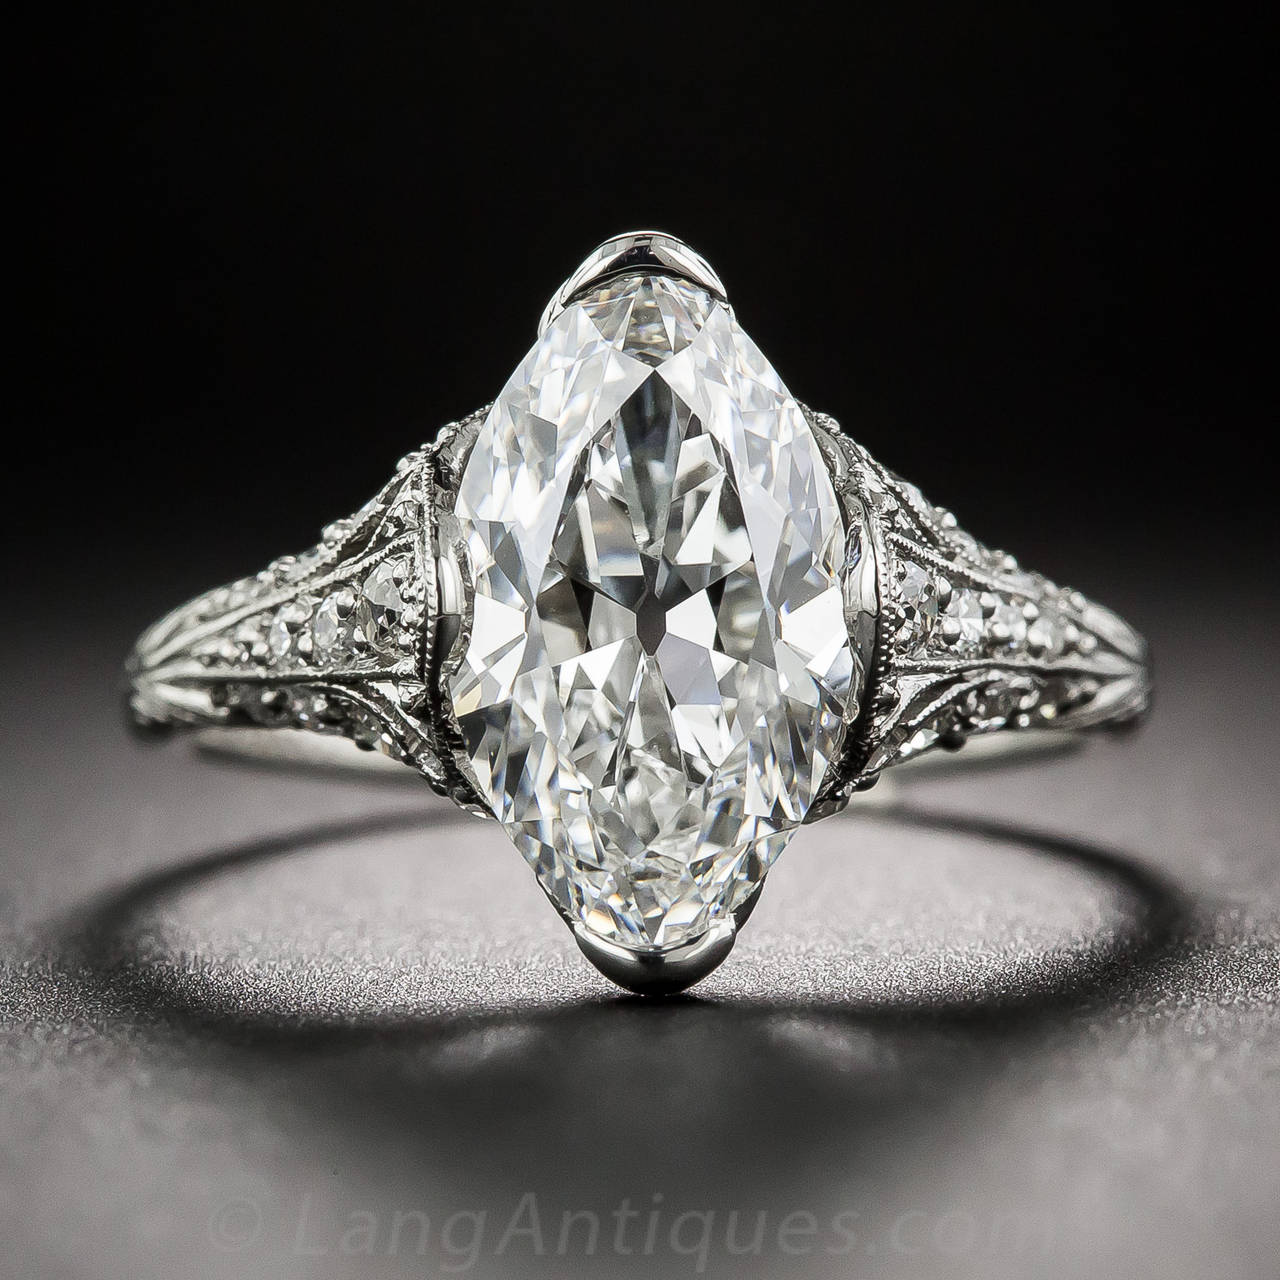 jewellers product edwardian rings collection ring friedman engagement diamond jack